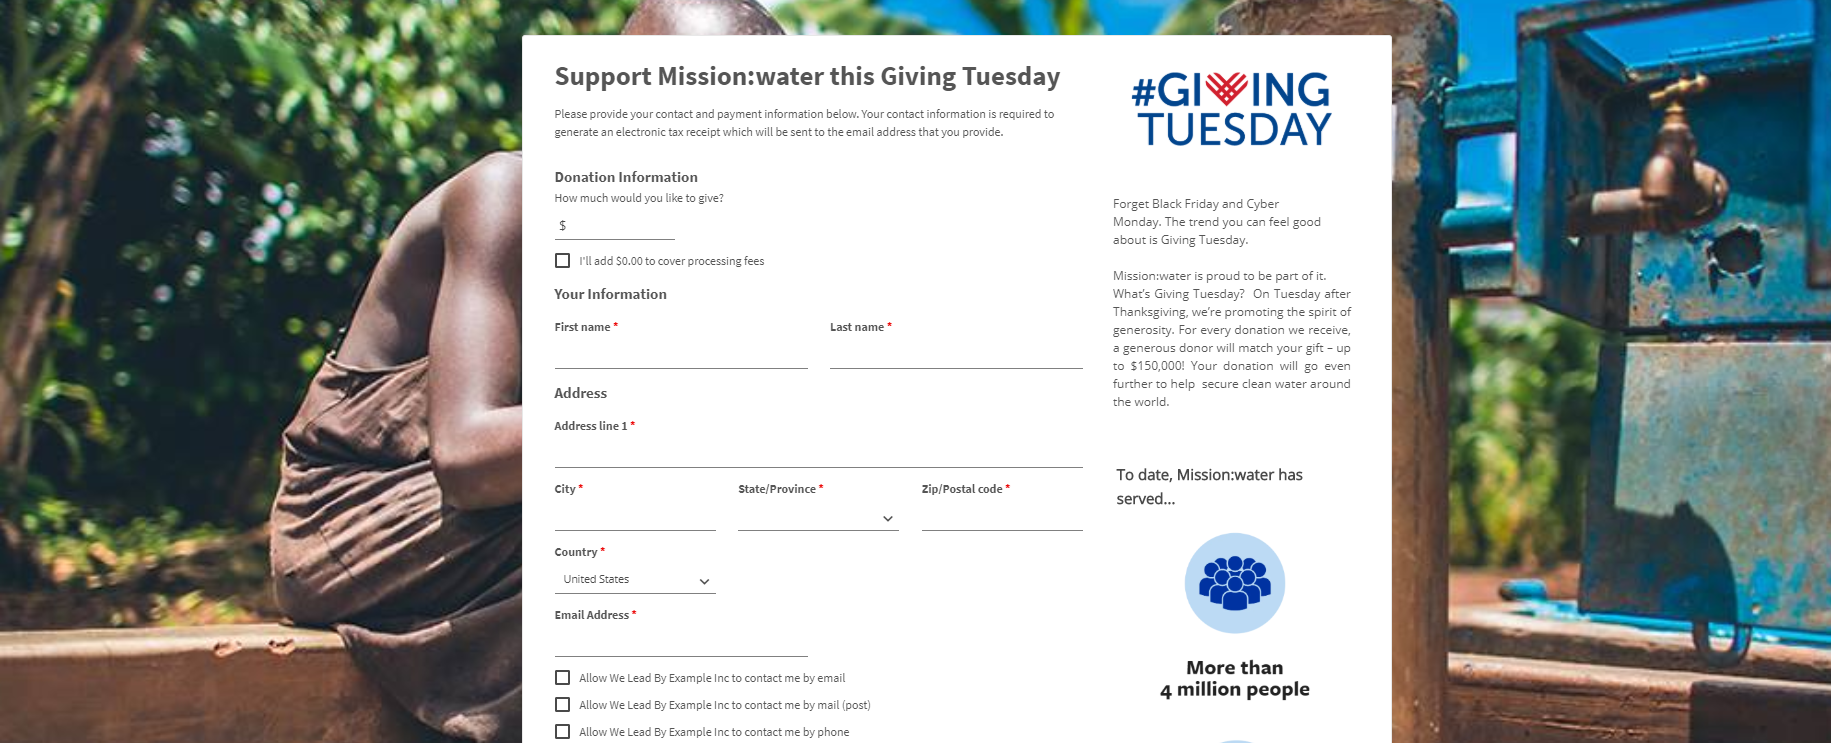 Giving Tuesday page